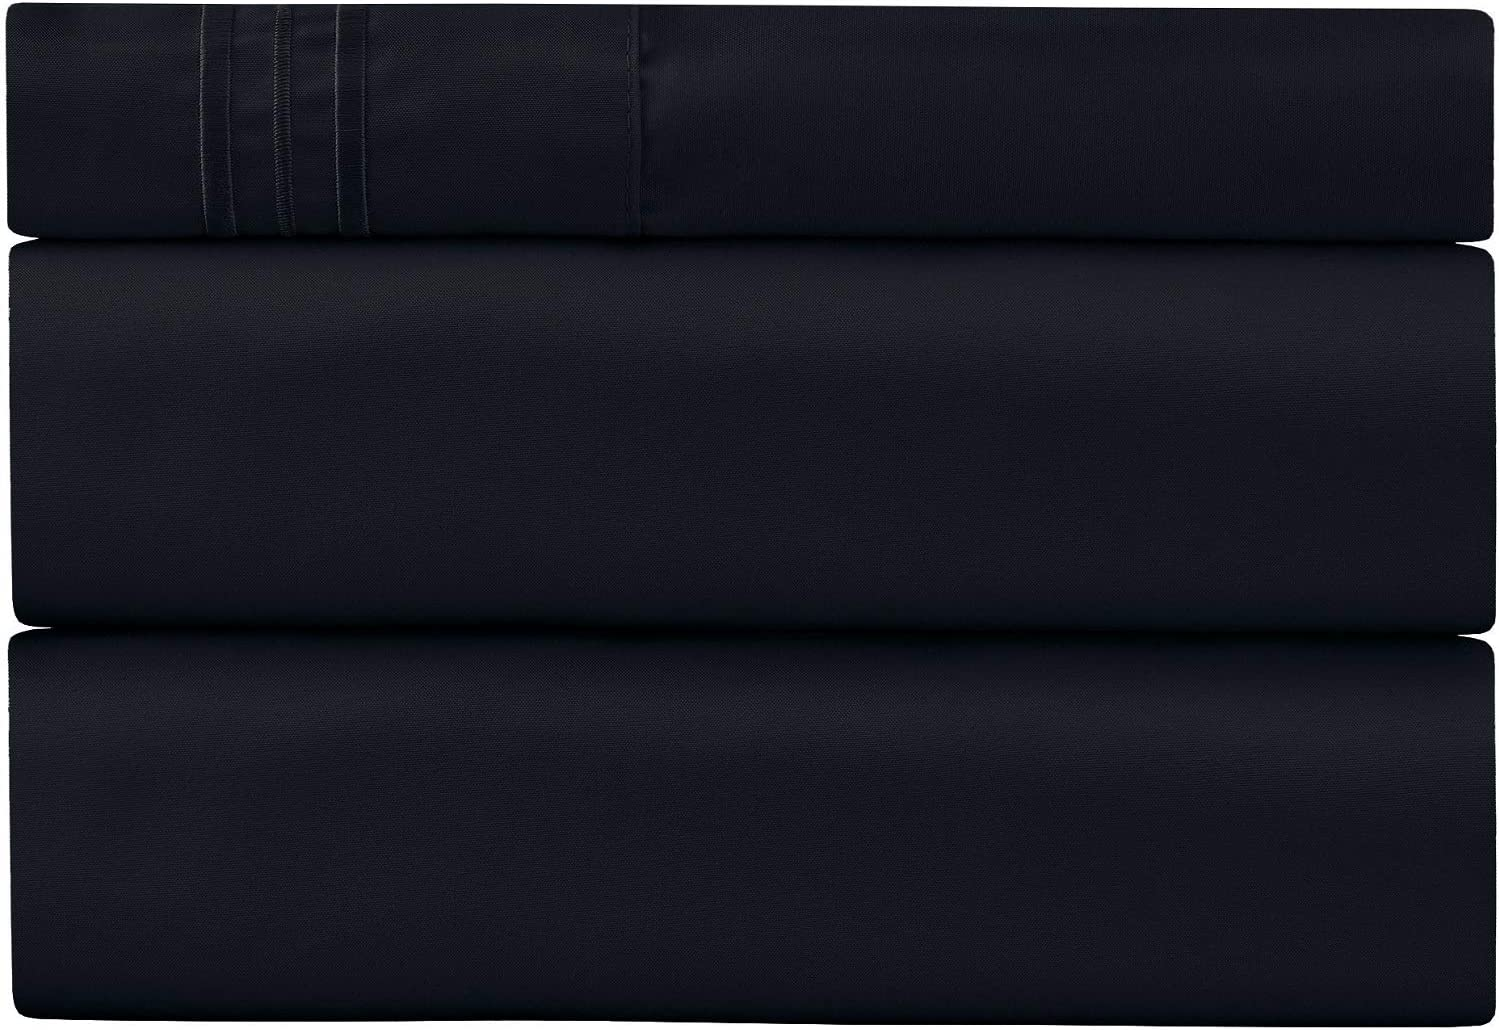 Twin Sheet Set - 1 Pillow Case, Flat and Deep Pocket Fitted Sheet - Extra Soft Twin Sheets - Breathable & Hypoallergenic - Cooling Sheets - Twin Bedding Sets - Fade Resistant (Twin, Royal Blue)